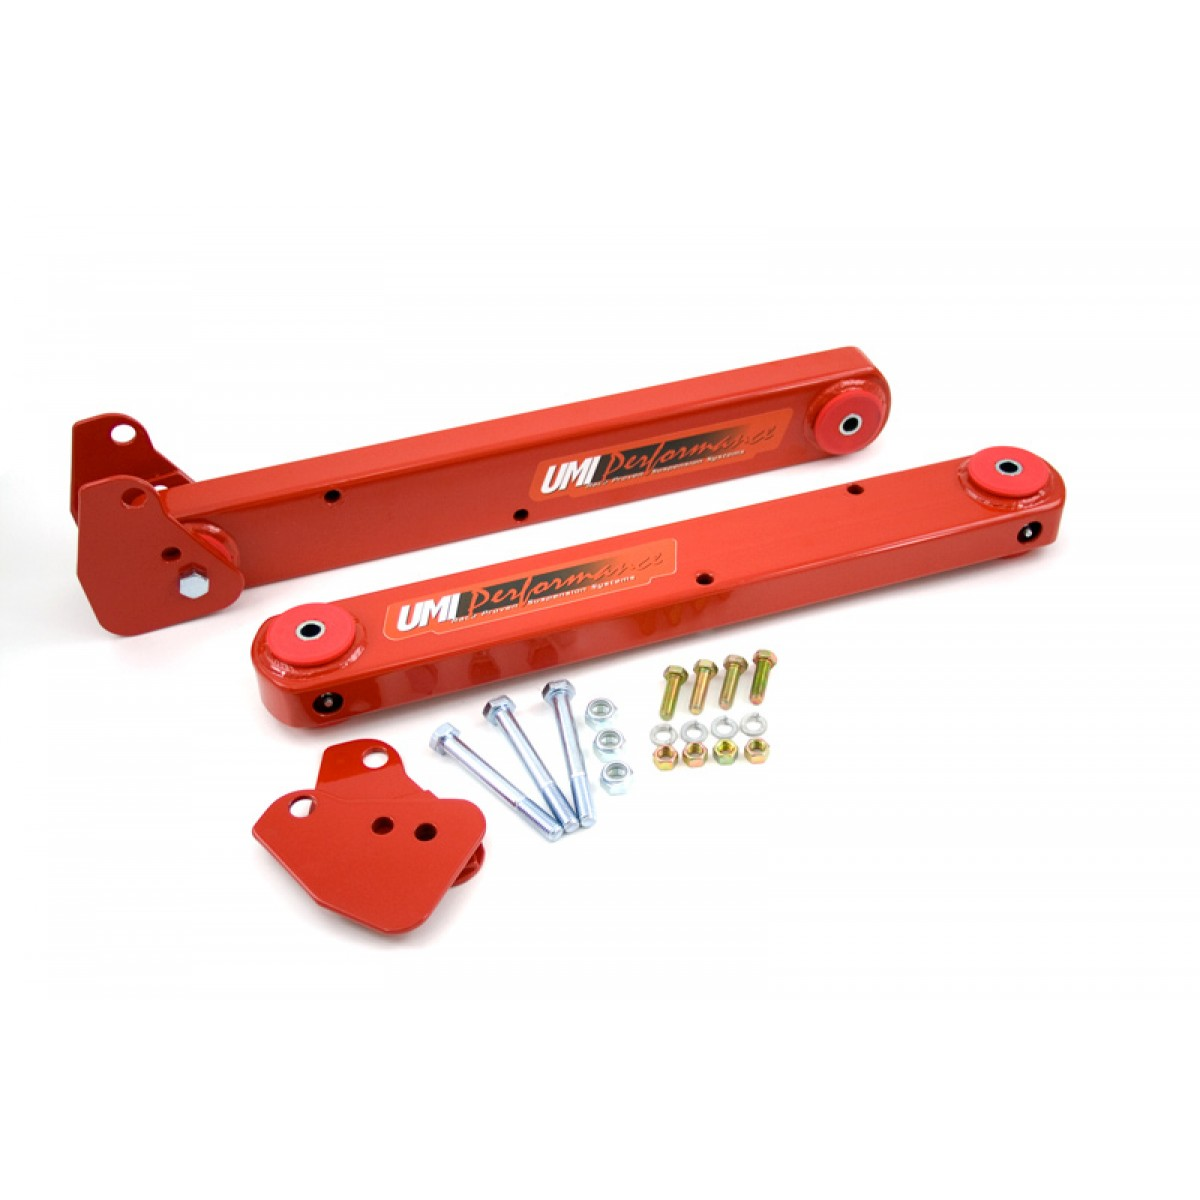 Buick Regal Grand National Rear Lift Bar Set Up Umi Performance on Buick Regal Fuel Filter